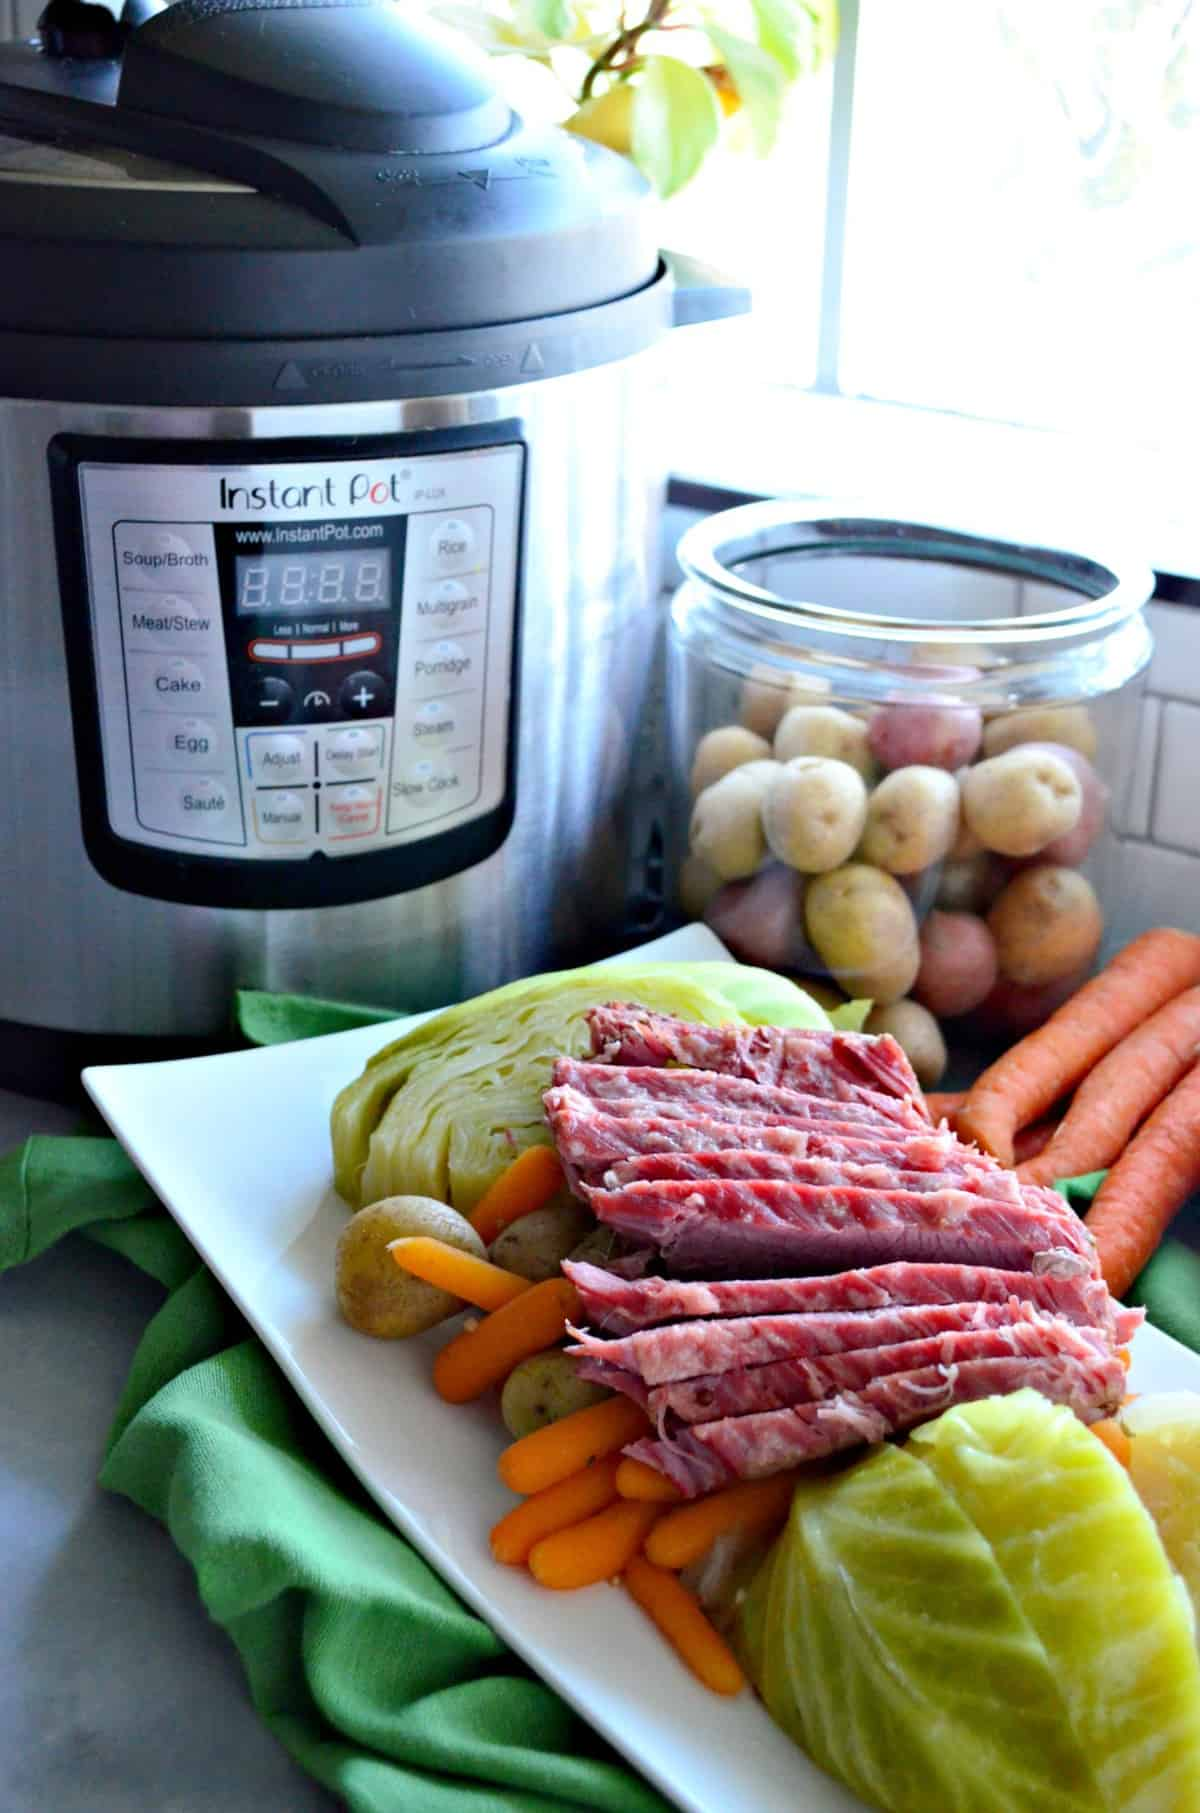 Instant Pot Corned Beef & Cabbage plated with Instant Pot in the background.